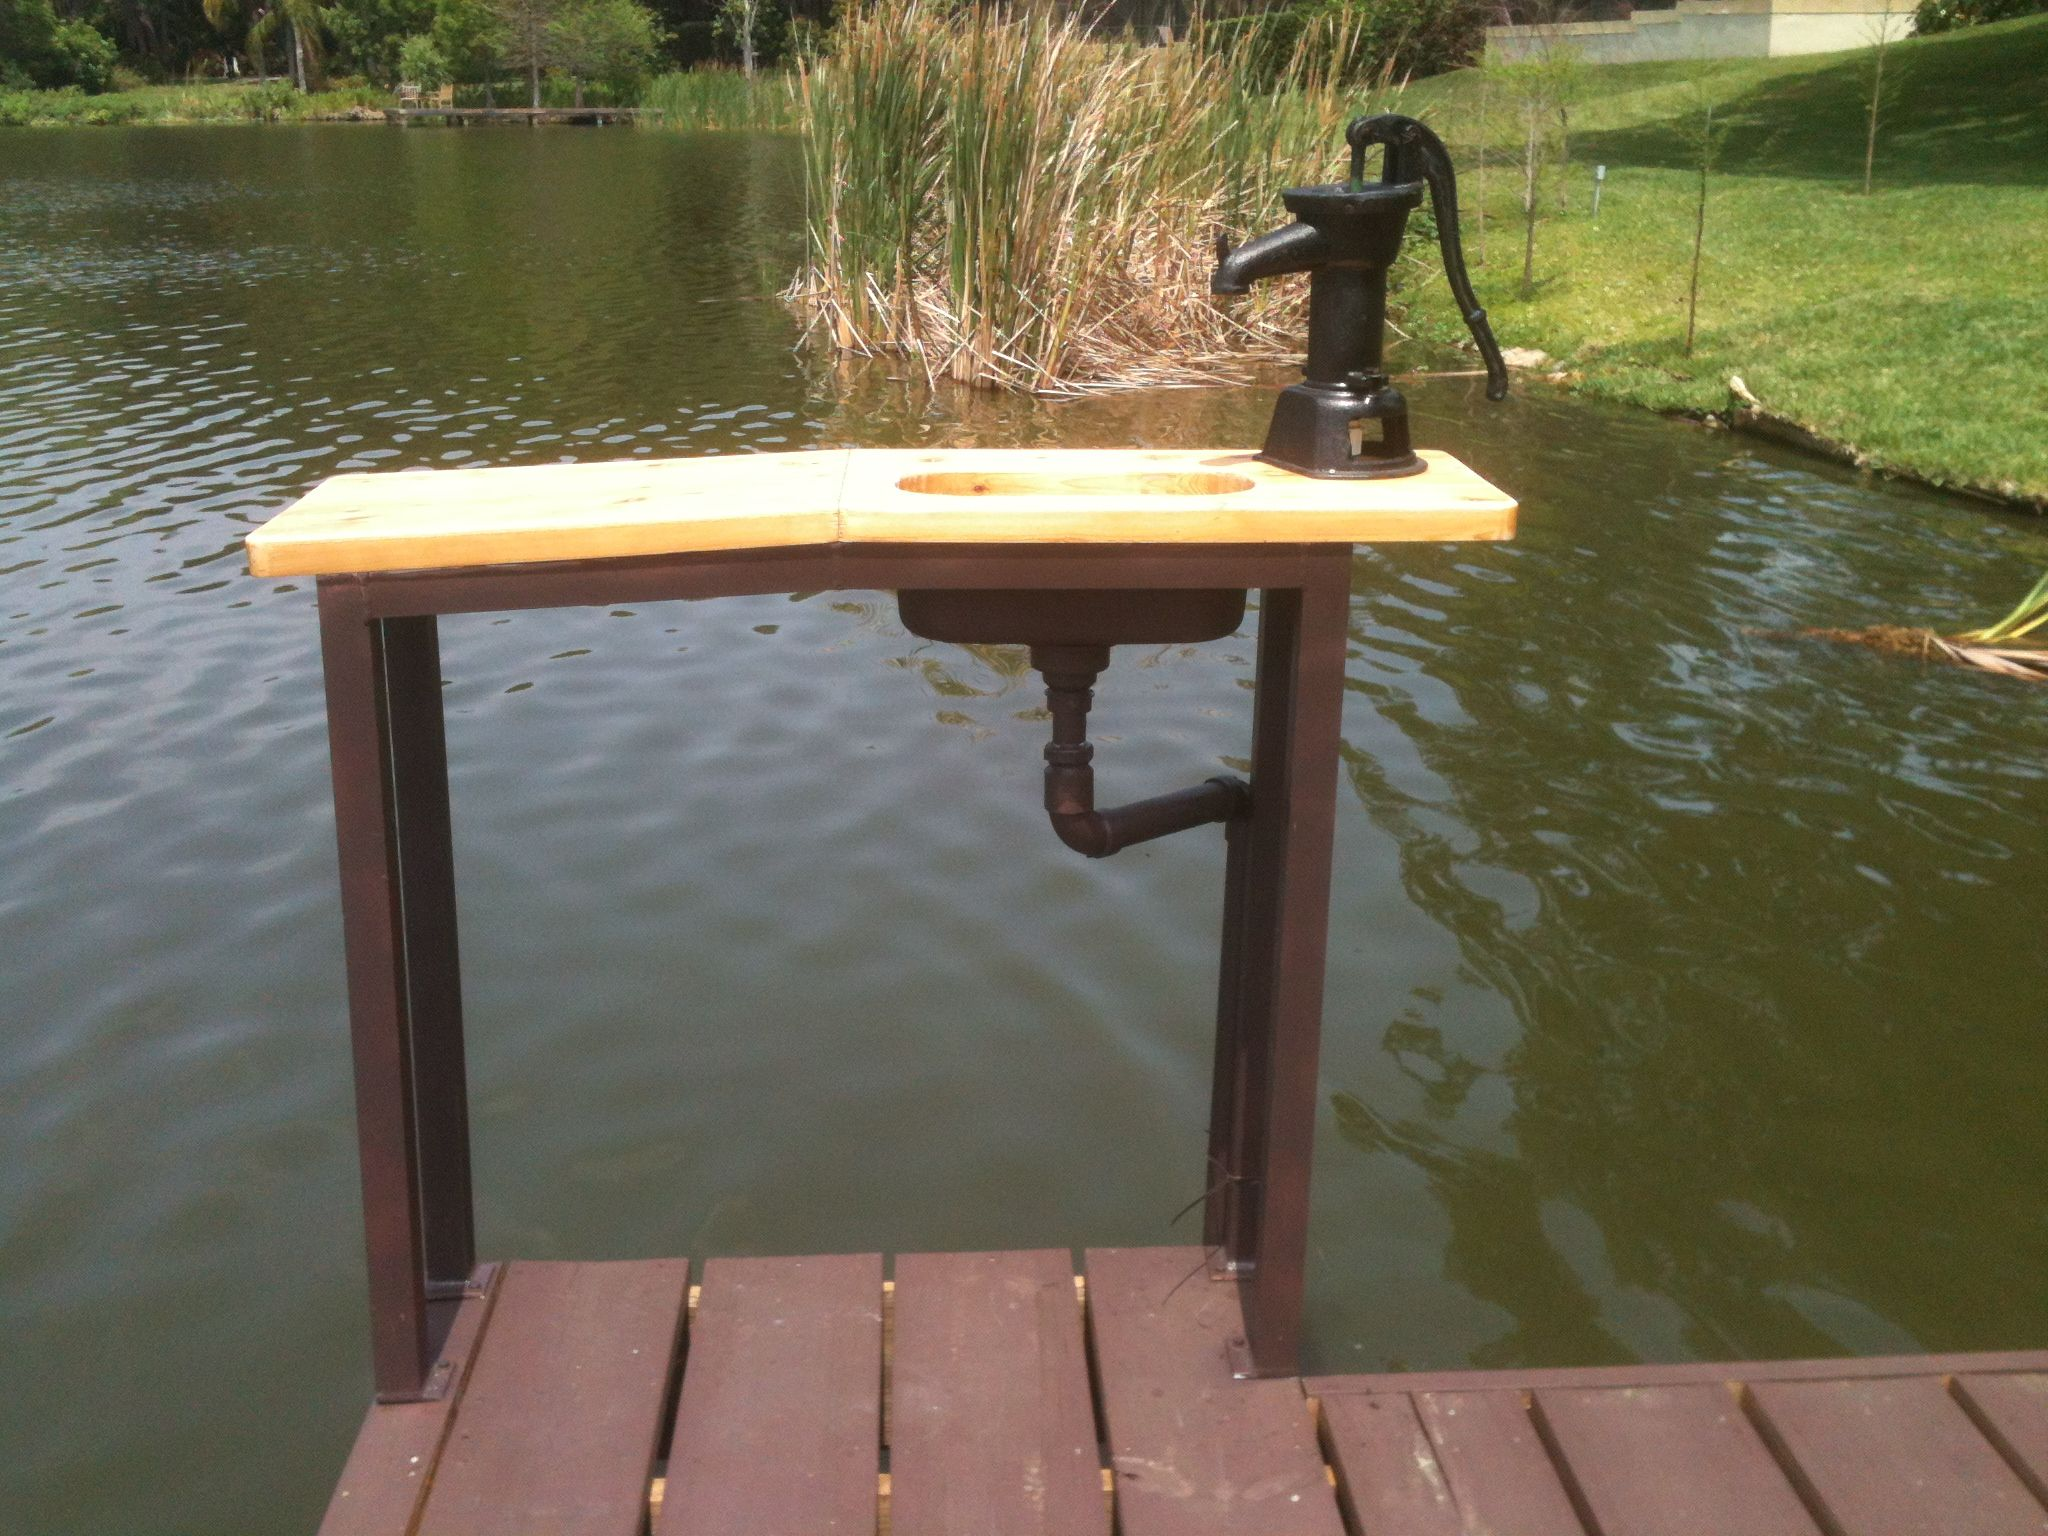 Uncategorized Dock Design Ideas best 25 dock ideas on pinterest lake boat and custom fish cleaning table i made with stainless sink hand pump cedar top